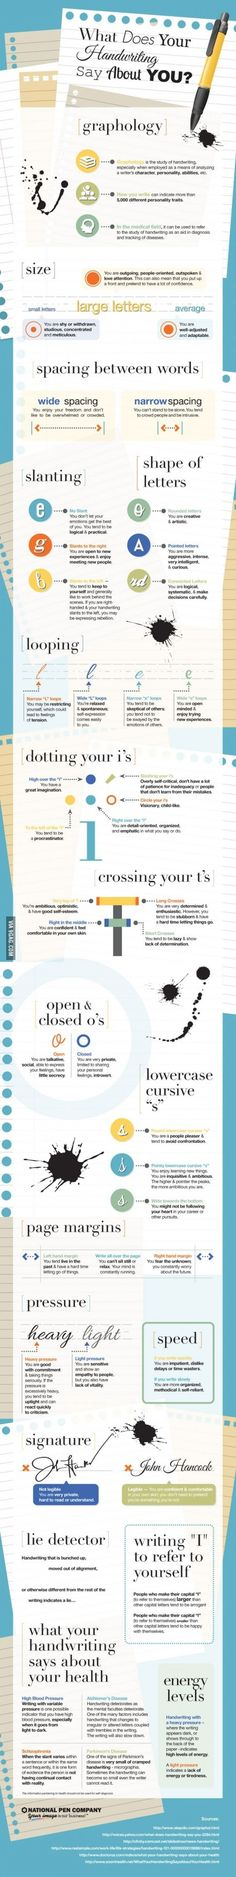 What your handwriting say about you. from Visual.ly #infographic #penmanship #graphology